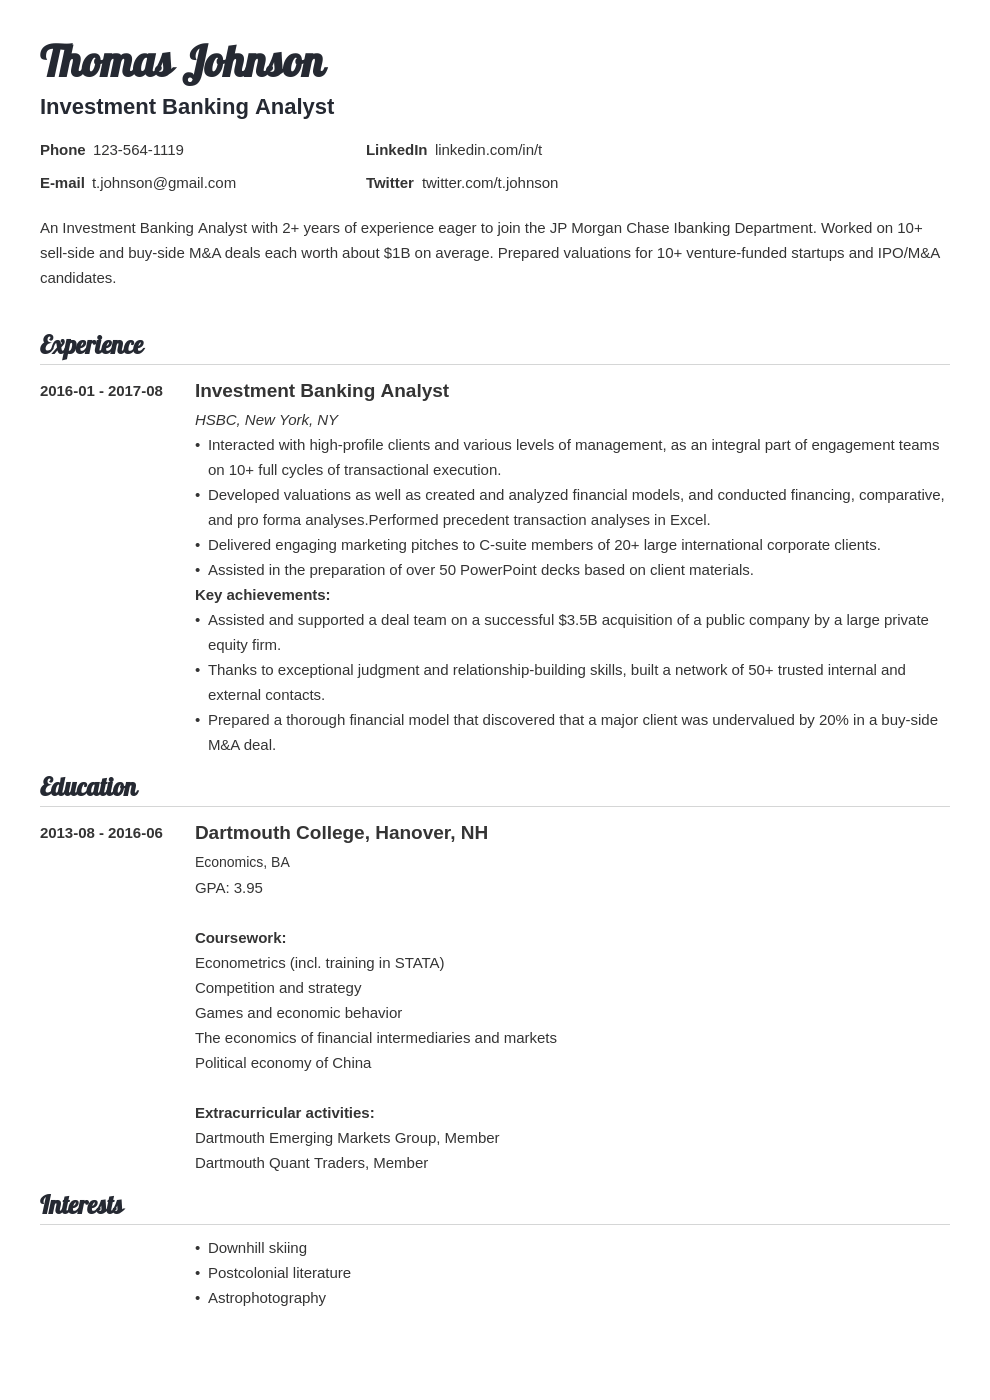 investment banker resume example template valera